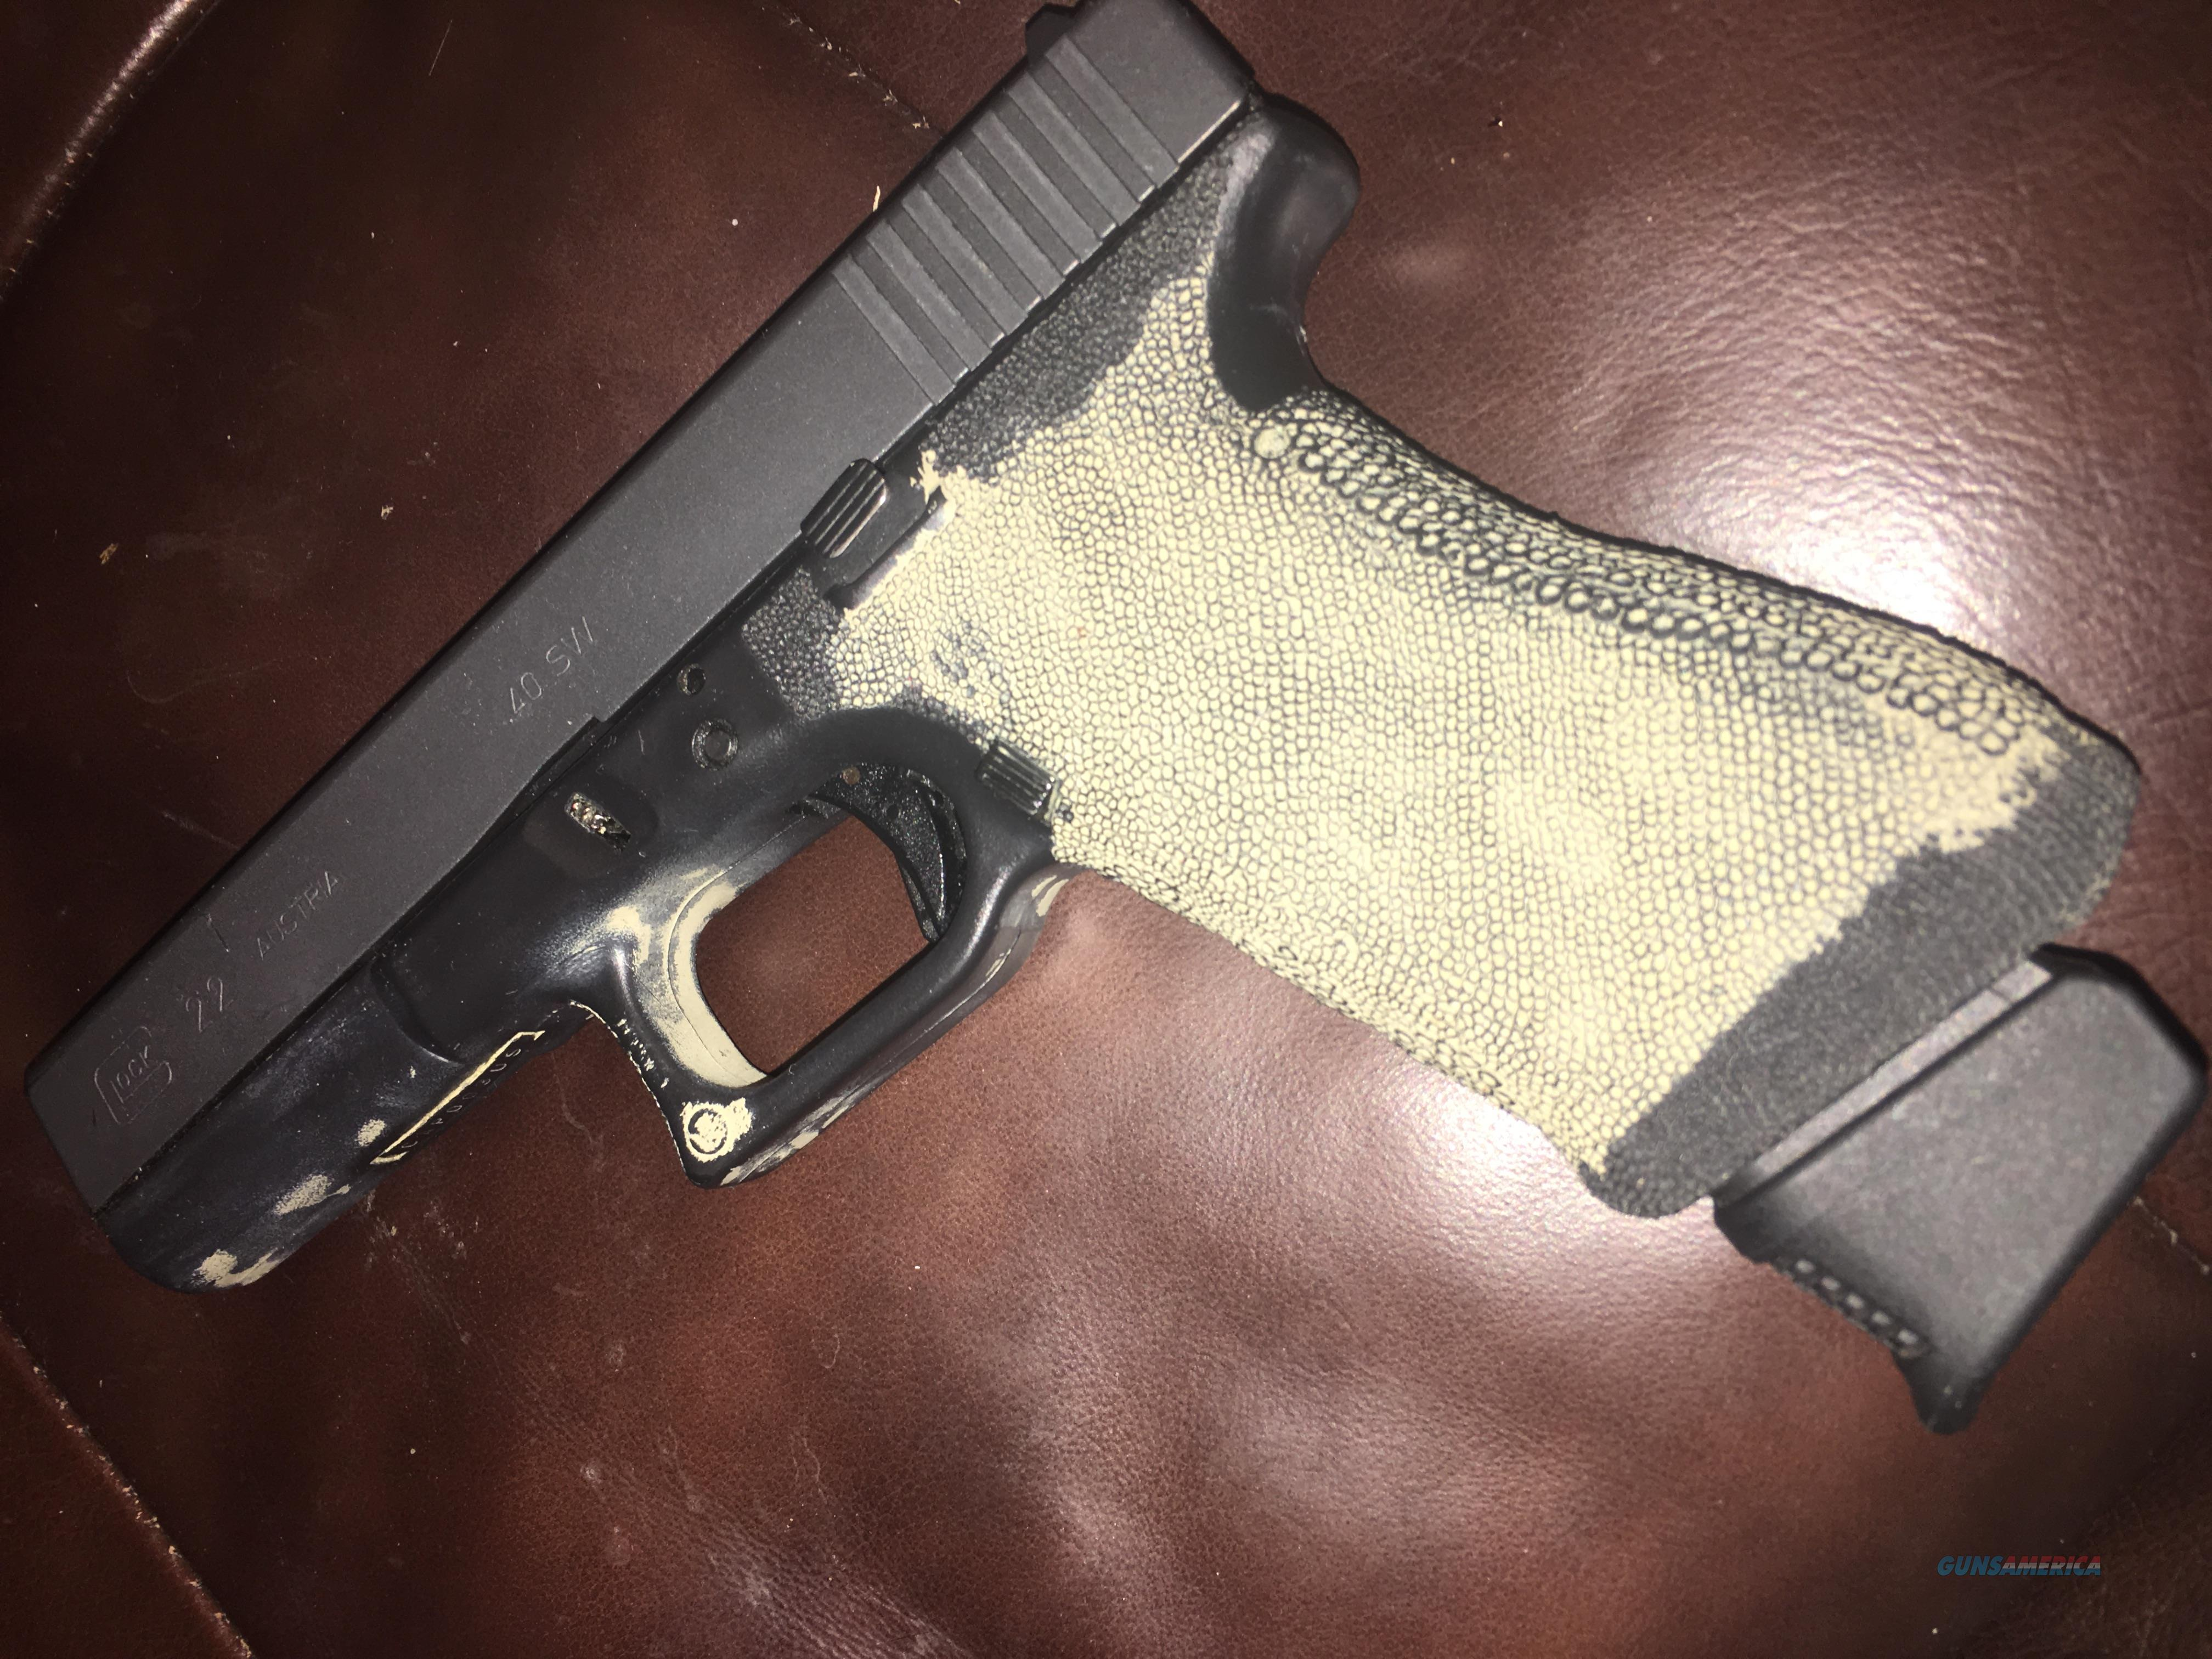 Custom Glock 22 COYOTE STIPPLE GRIP FIBER OPTIC SIGHT  Guns > Pistols > Glock Pistols > 22